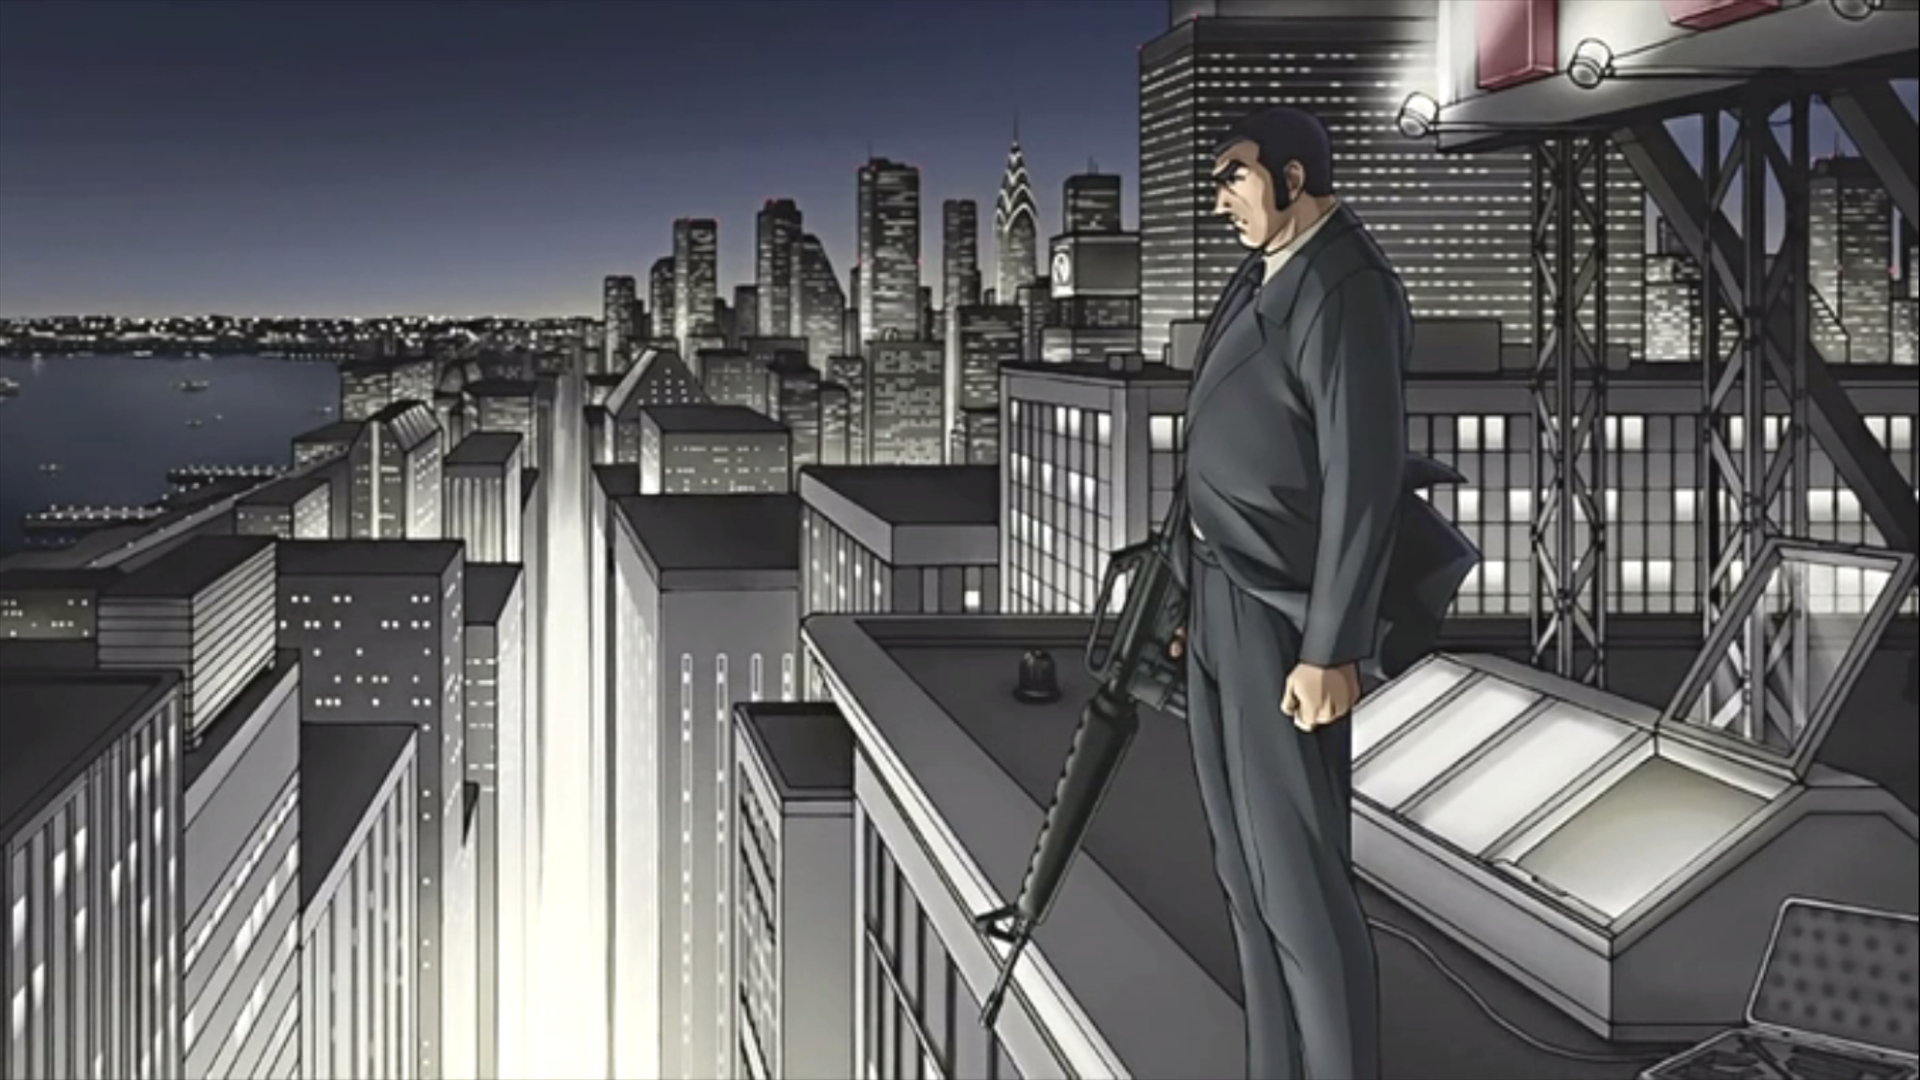 50 golgo 13 hd wallpapers backgrounds wallpaper abyss - Wallpaper abyss categories ...